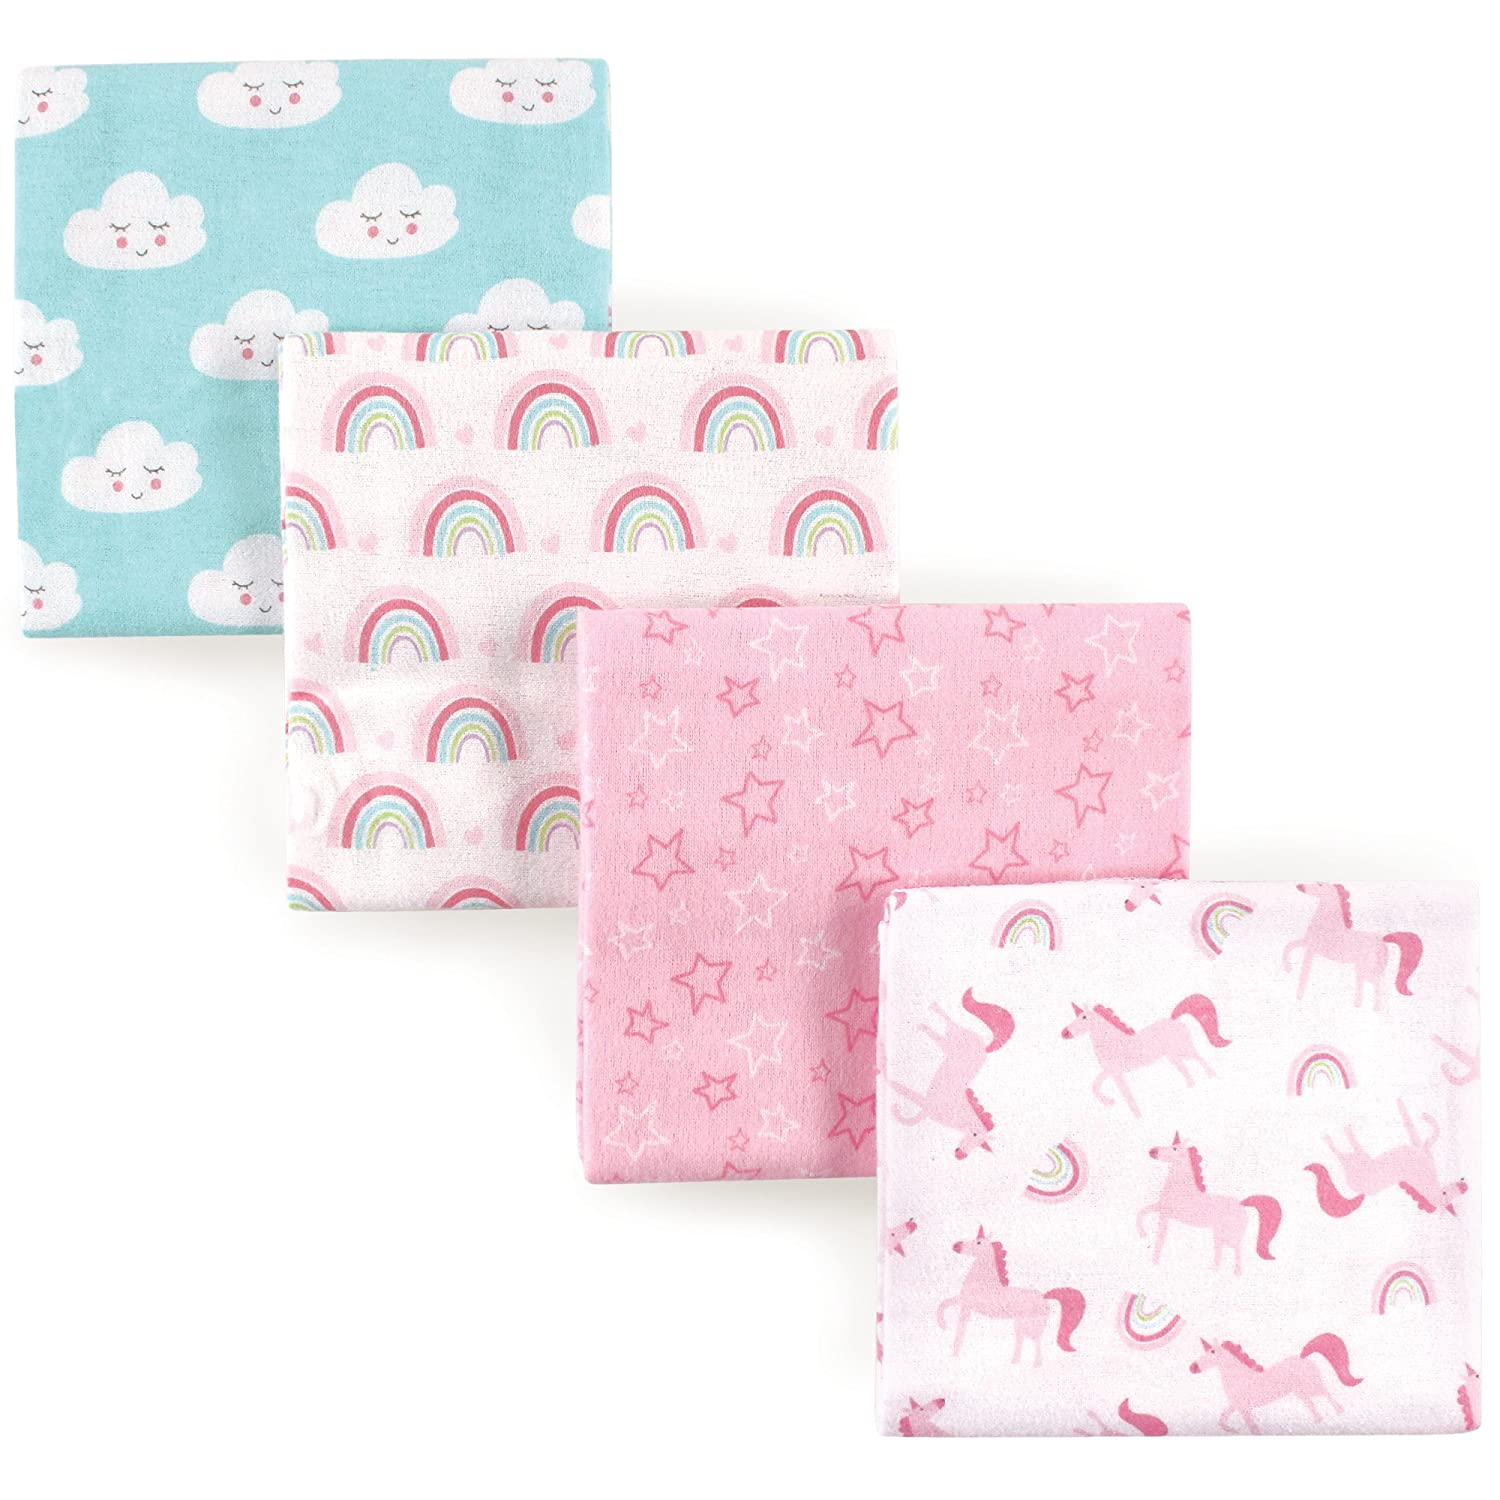 Luvable Friends Unisex Baby Cotton Flannel Receiving Blankets, Basic Elephant, One Size: Baby